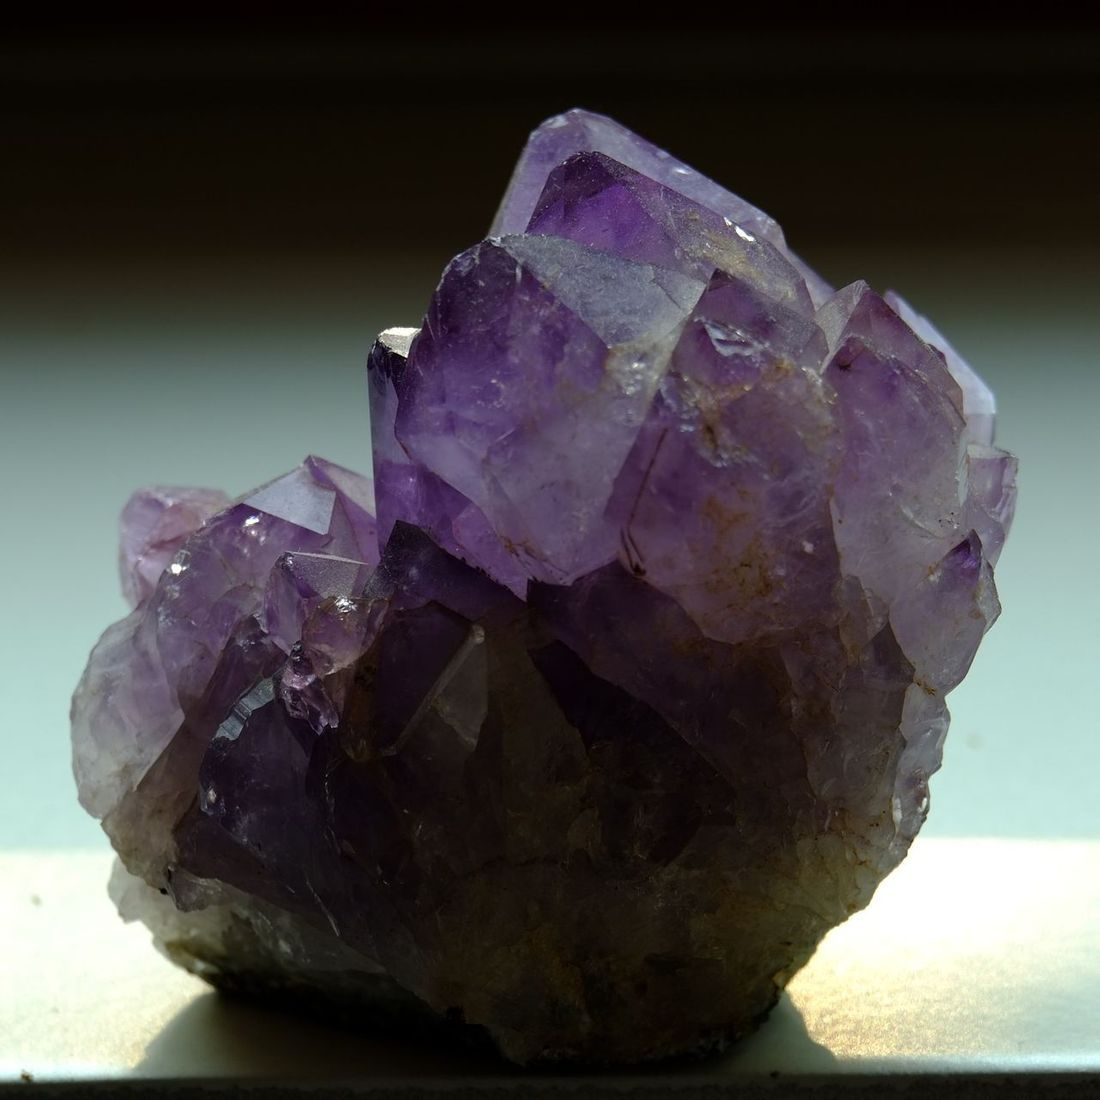 Amethyst, crystal healing, crystal therapy, addiction support, natural remedy for addicition, sobriety support, psychic protection, aura cleanser, what crystal do I need